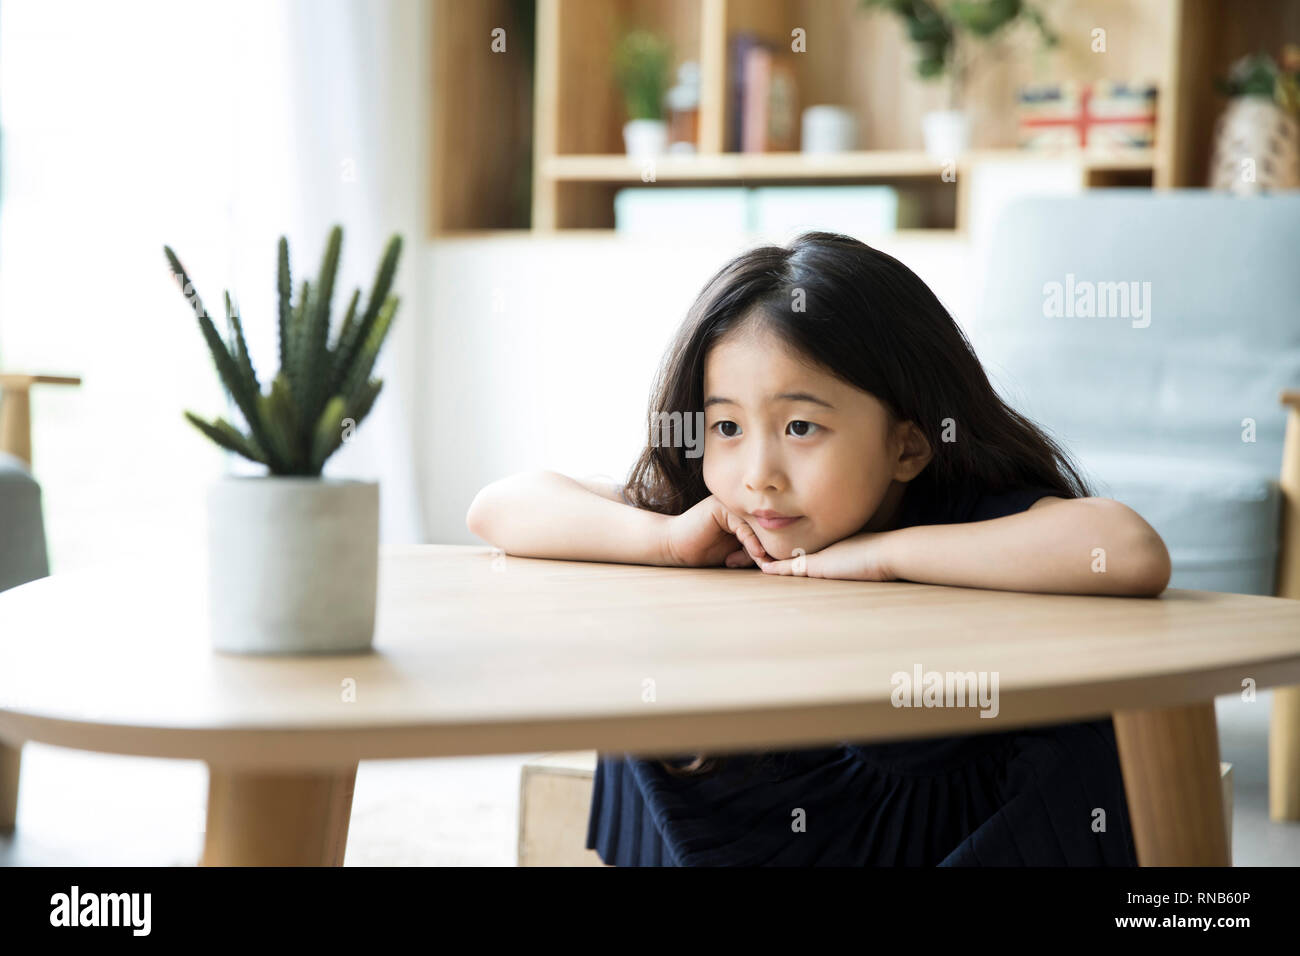 A Little Girl Lying On The Table Stock Photo Alamy